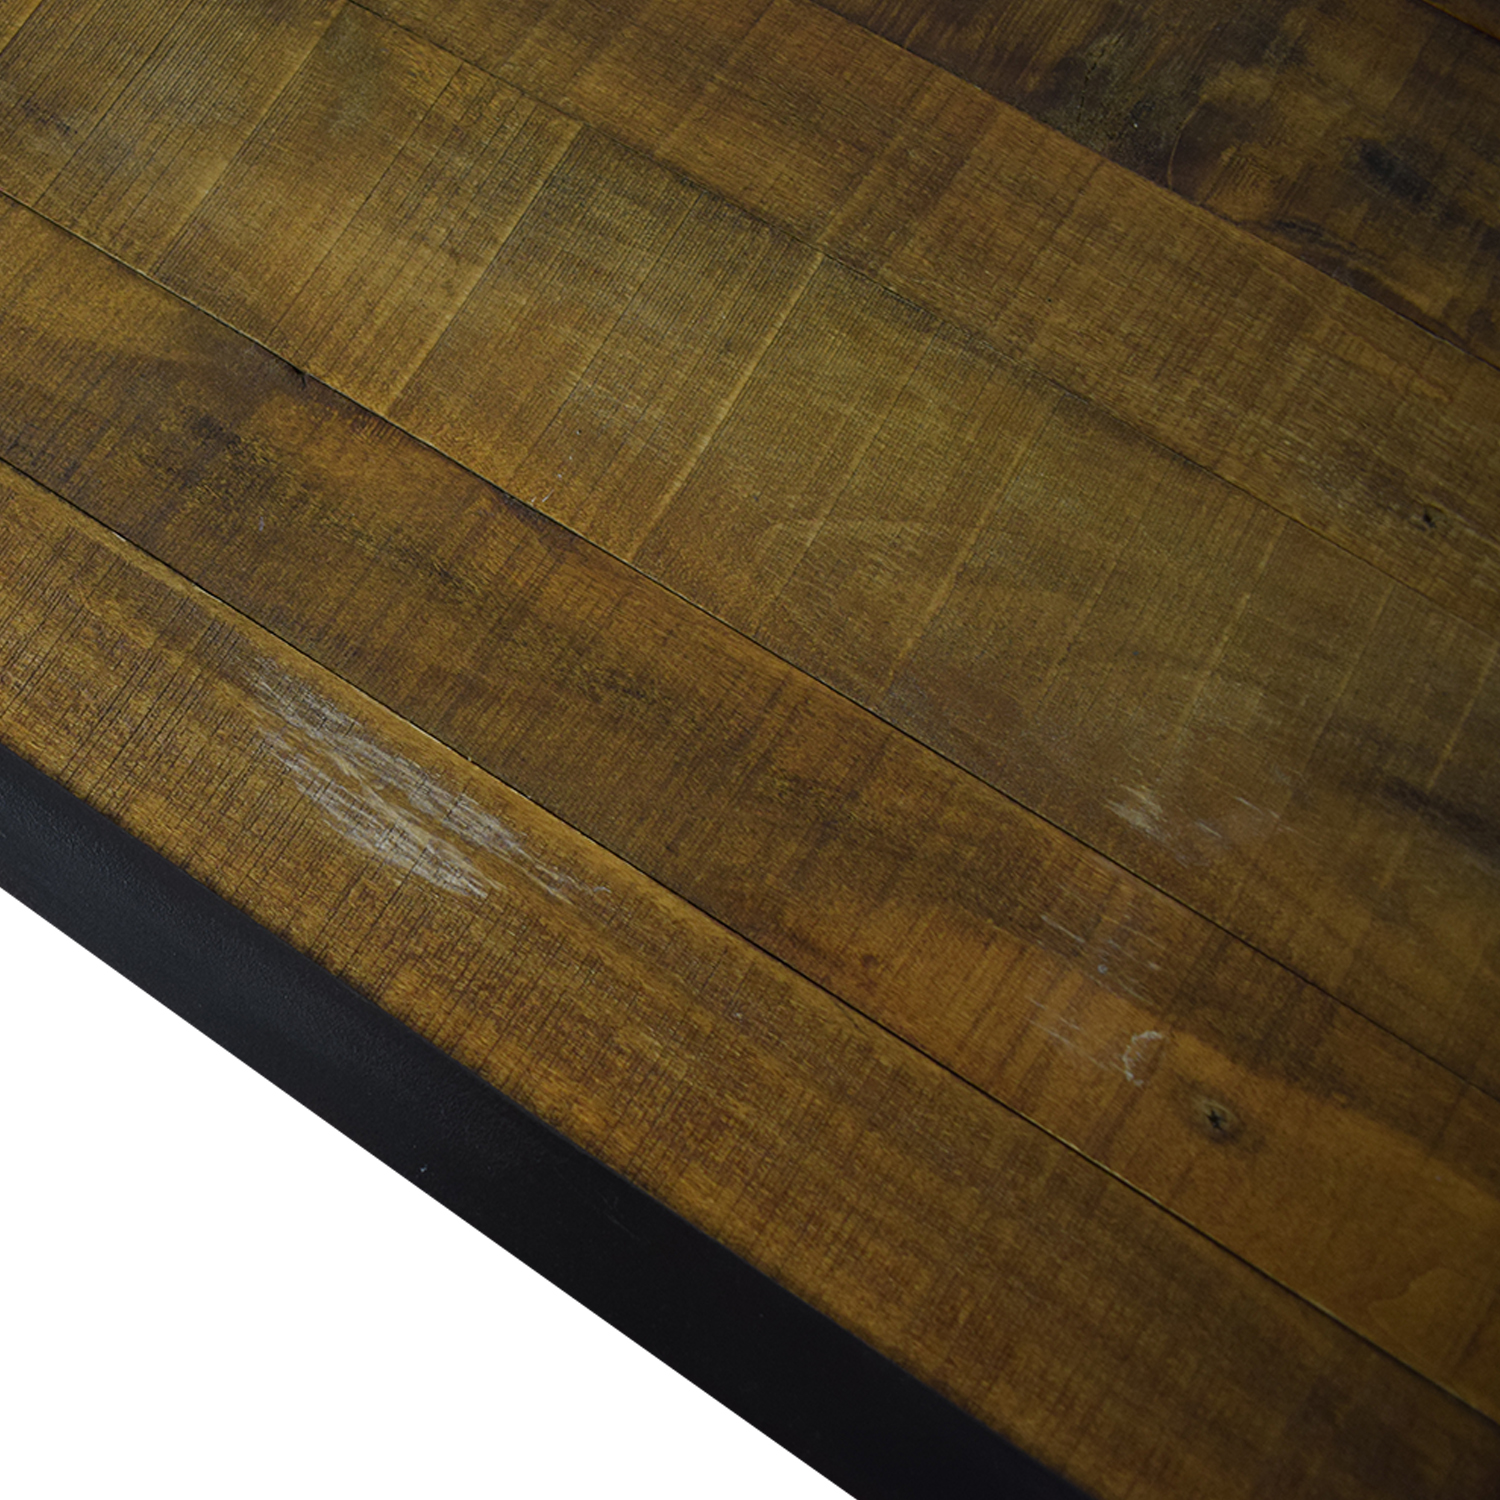 Rustic Wood Coffee Table for sale